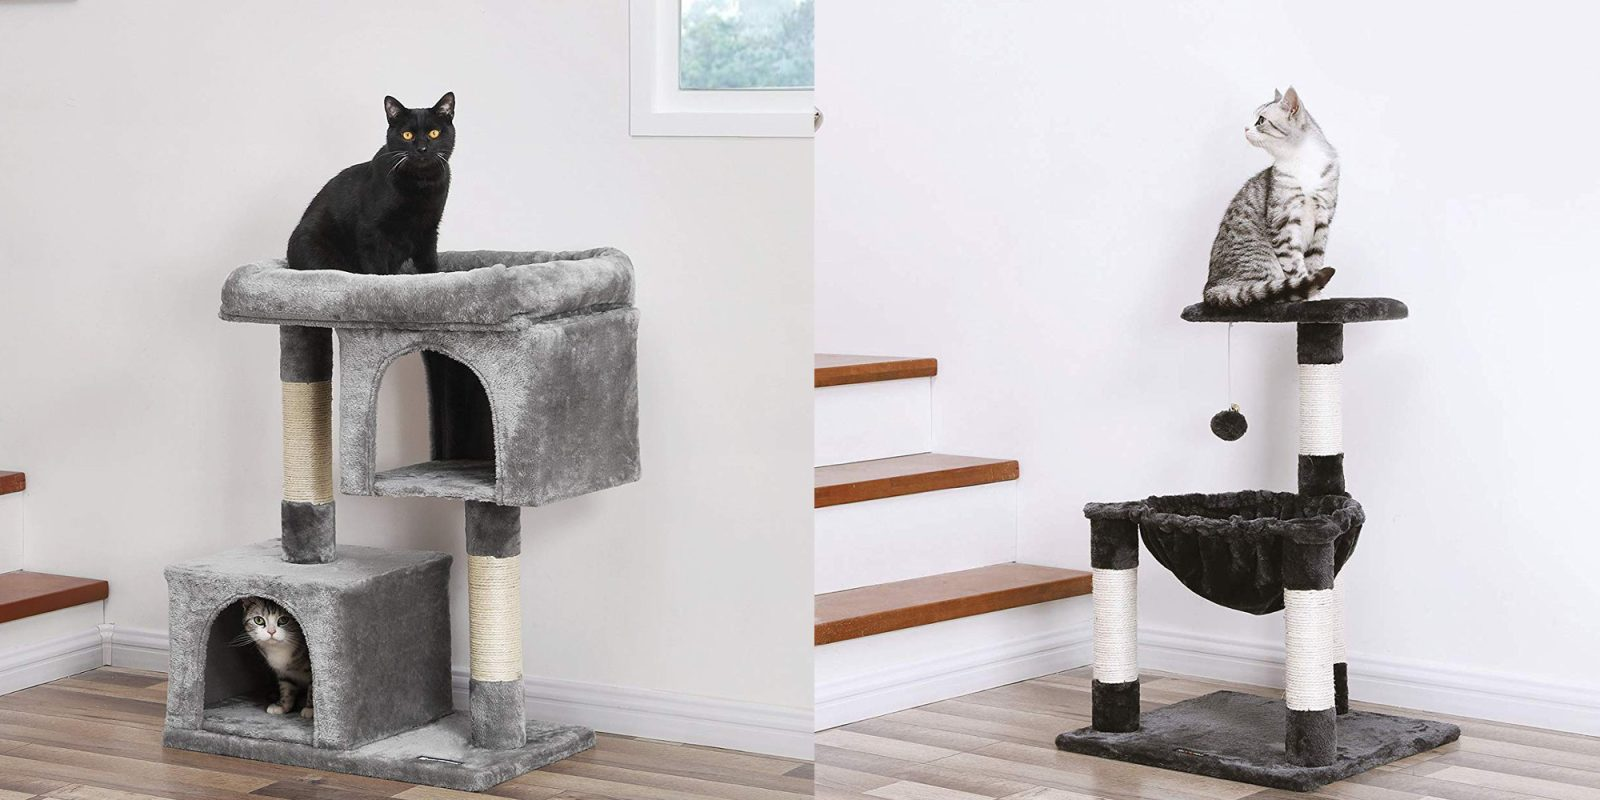 Luxury plush cat condos starting from $36 in today's Amazon Gold Box (23% off)